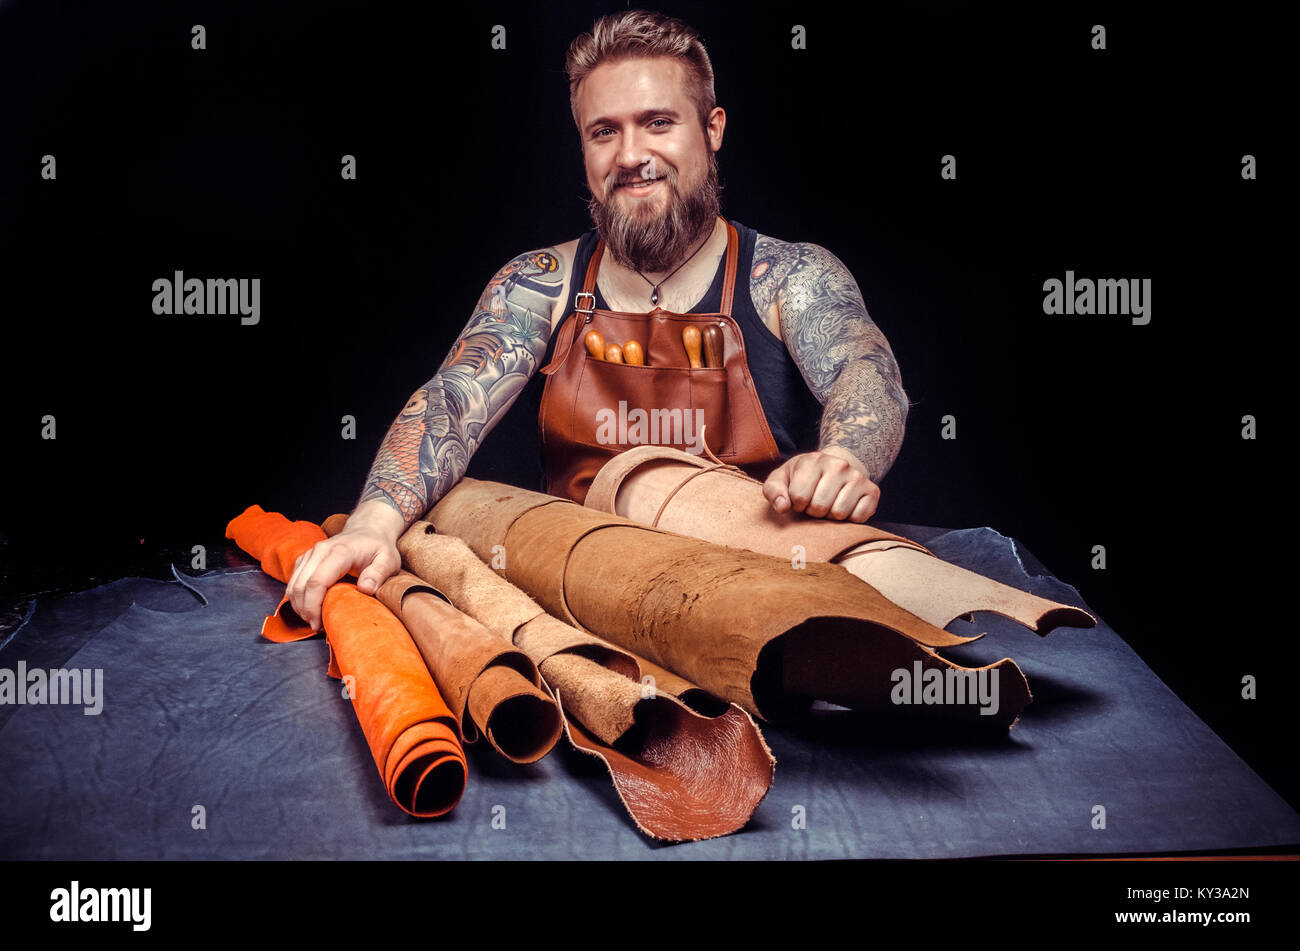 Man working with leather manufactures new product made of leather at his place of work - Stock Image